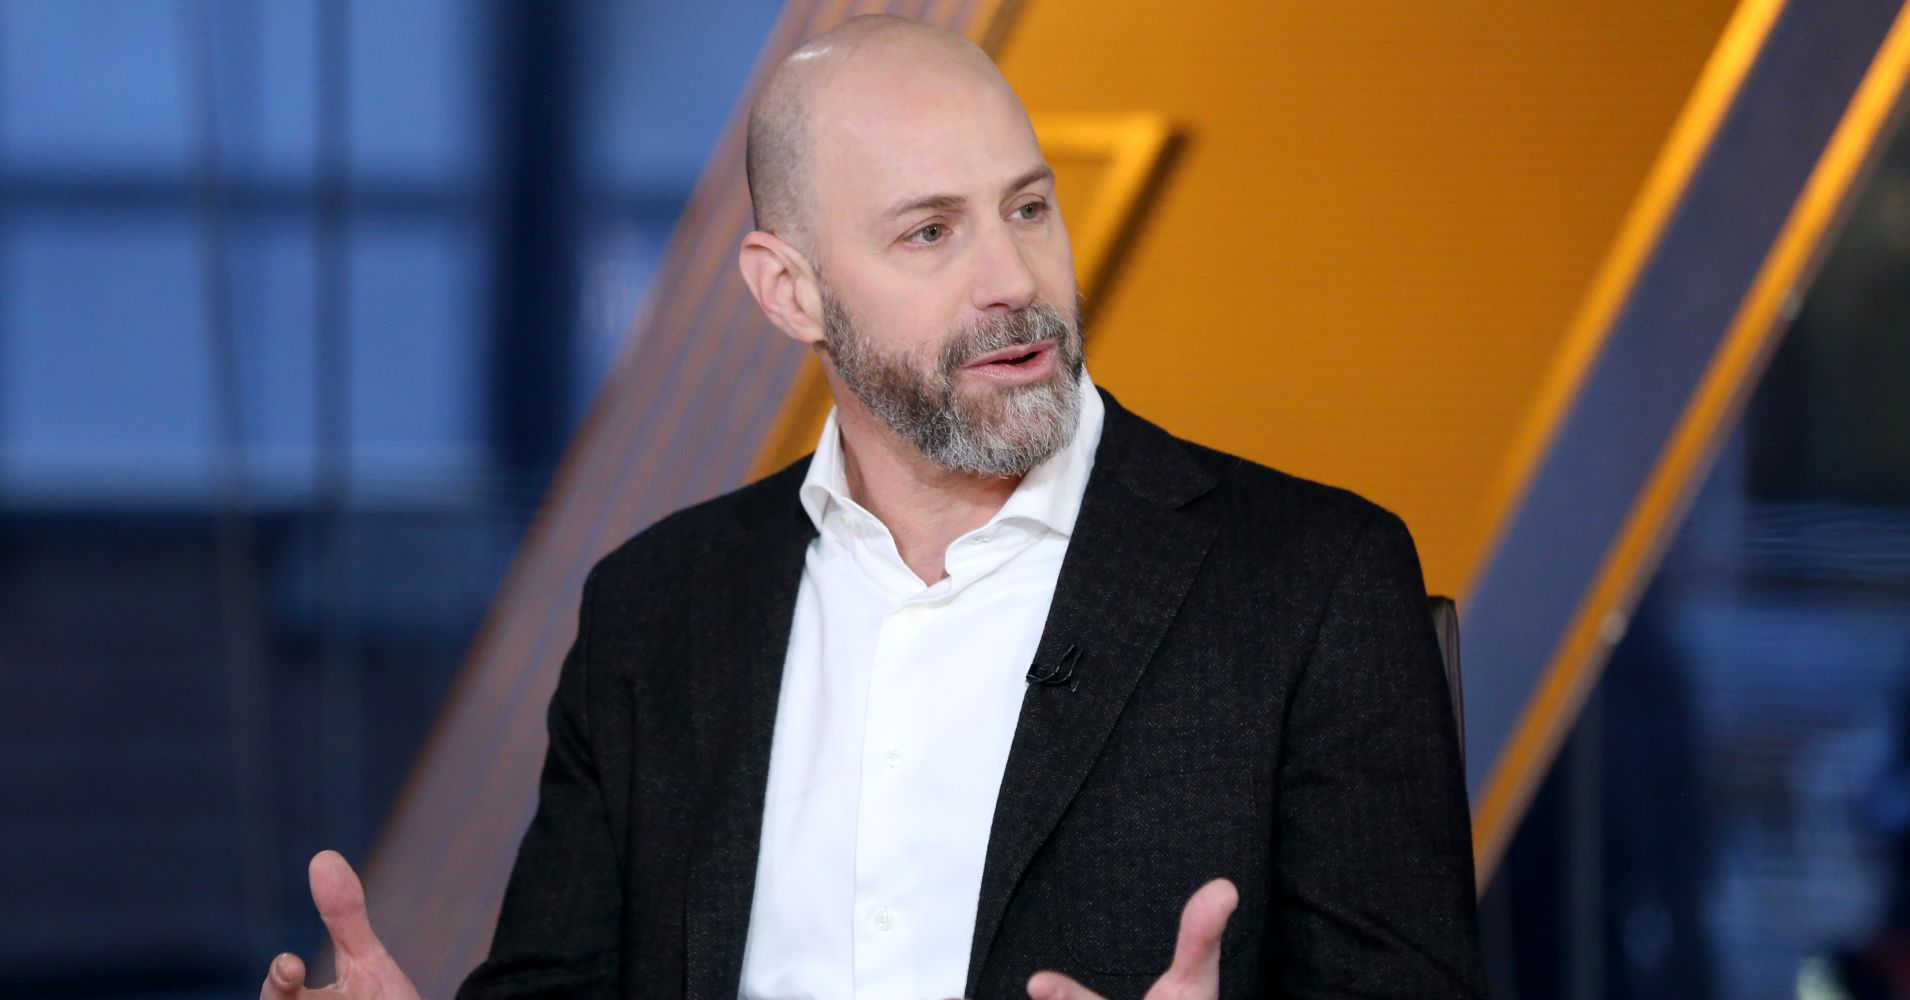 Etsy CEO shrugs off 'rocky' start to Q1: 'We feel really good'